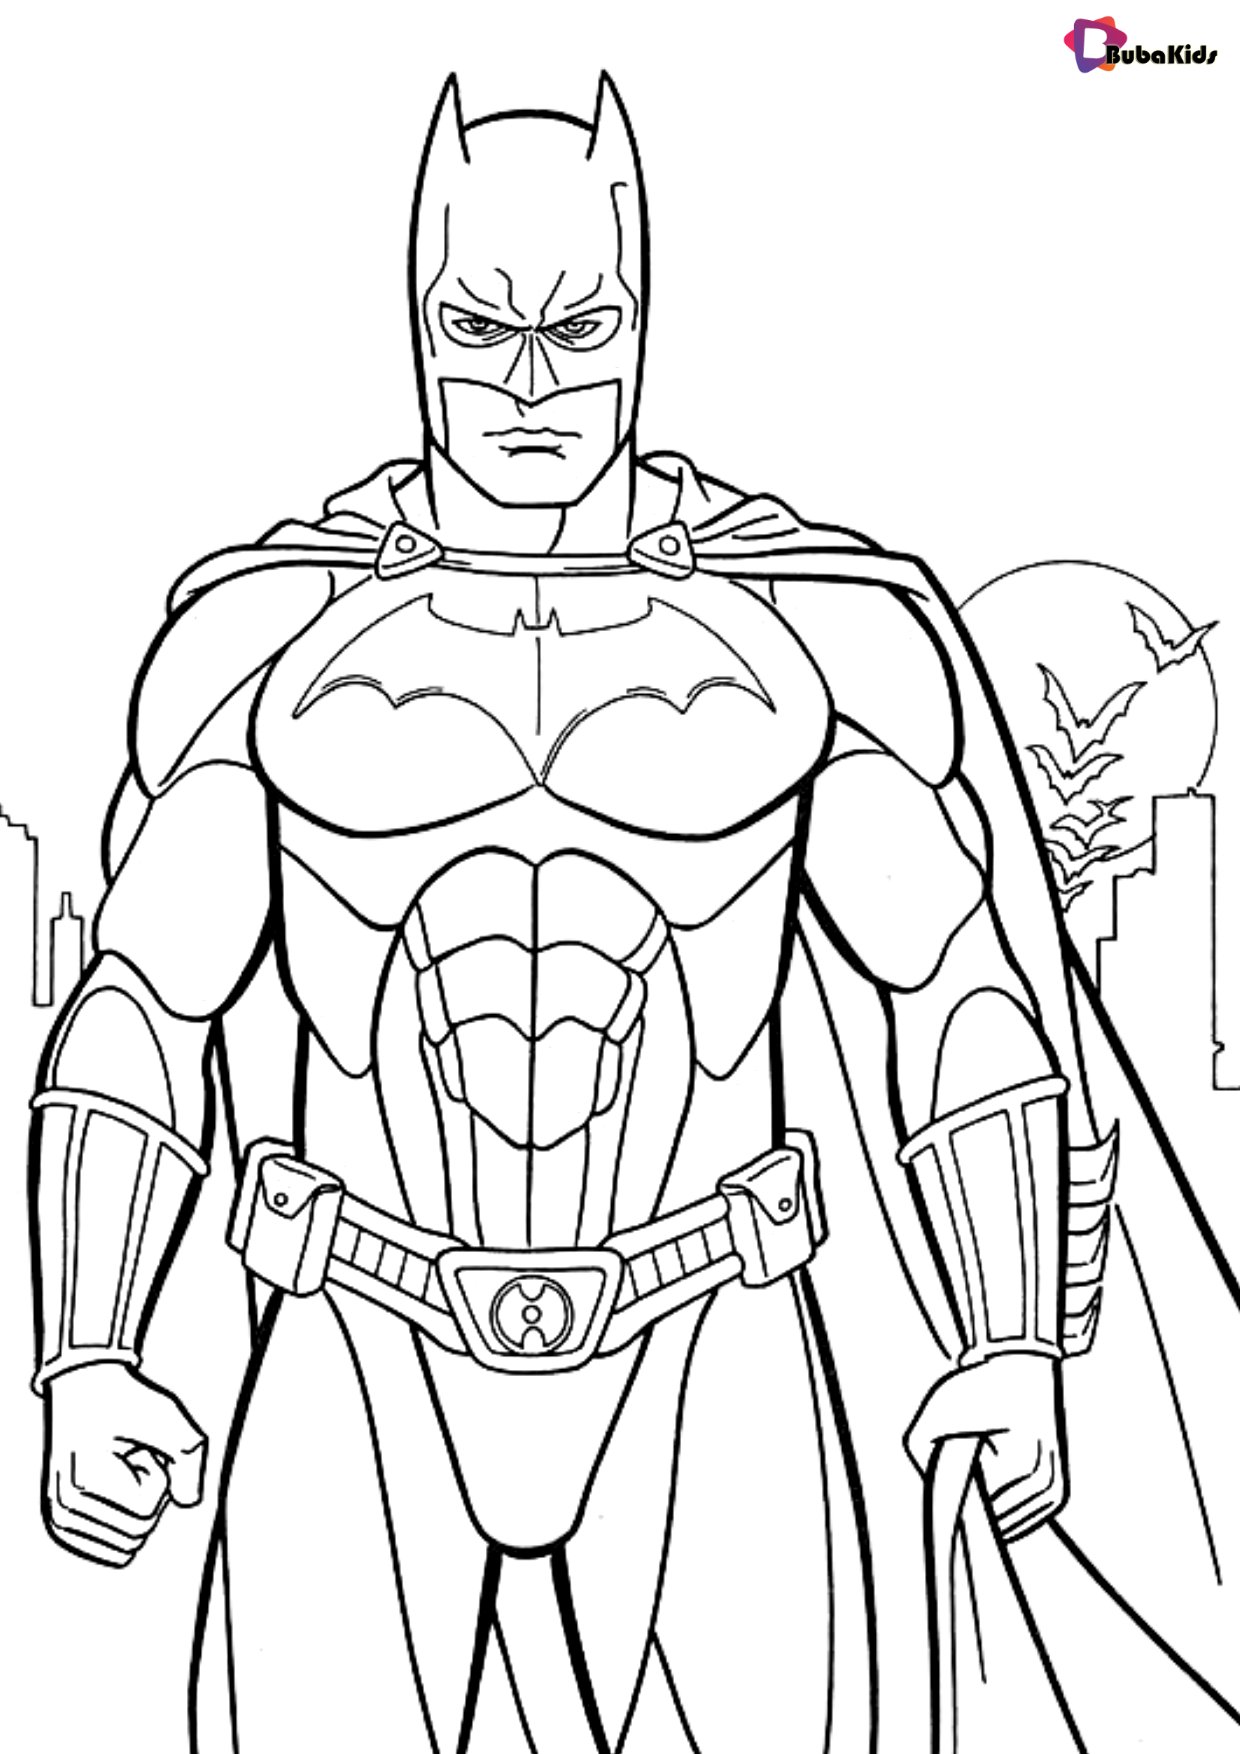 Superhero Coloring Pages Batman Coloring Page Collection Of Cartoon Coloring Pages For In 2020 Batman Coloring Pages Superhero Coloring Pages Free Kids Coloring Pages